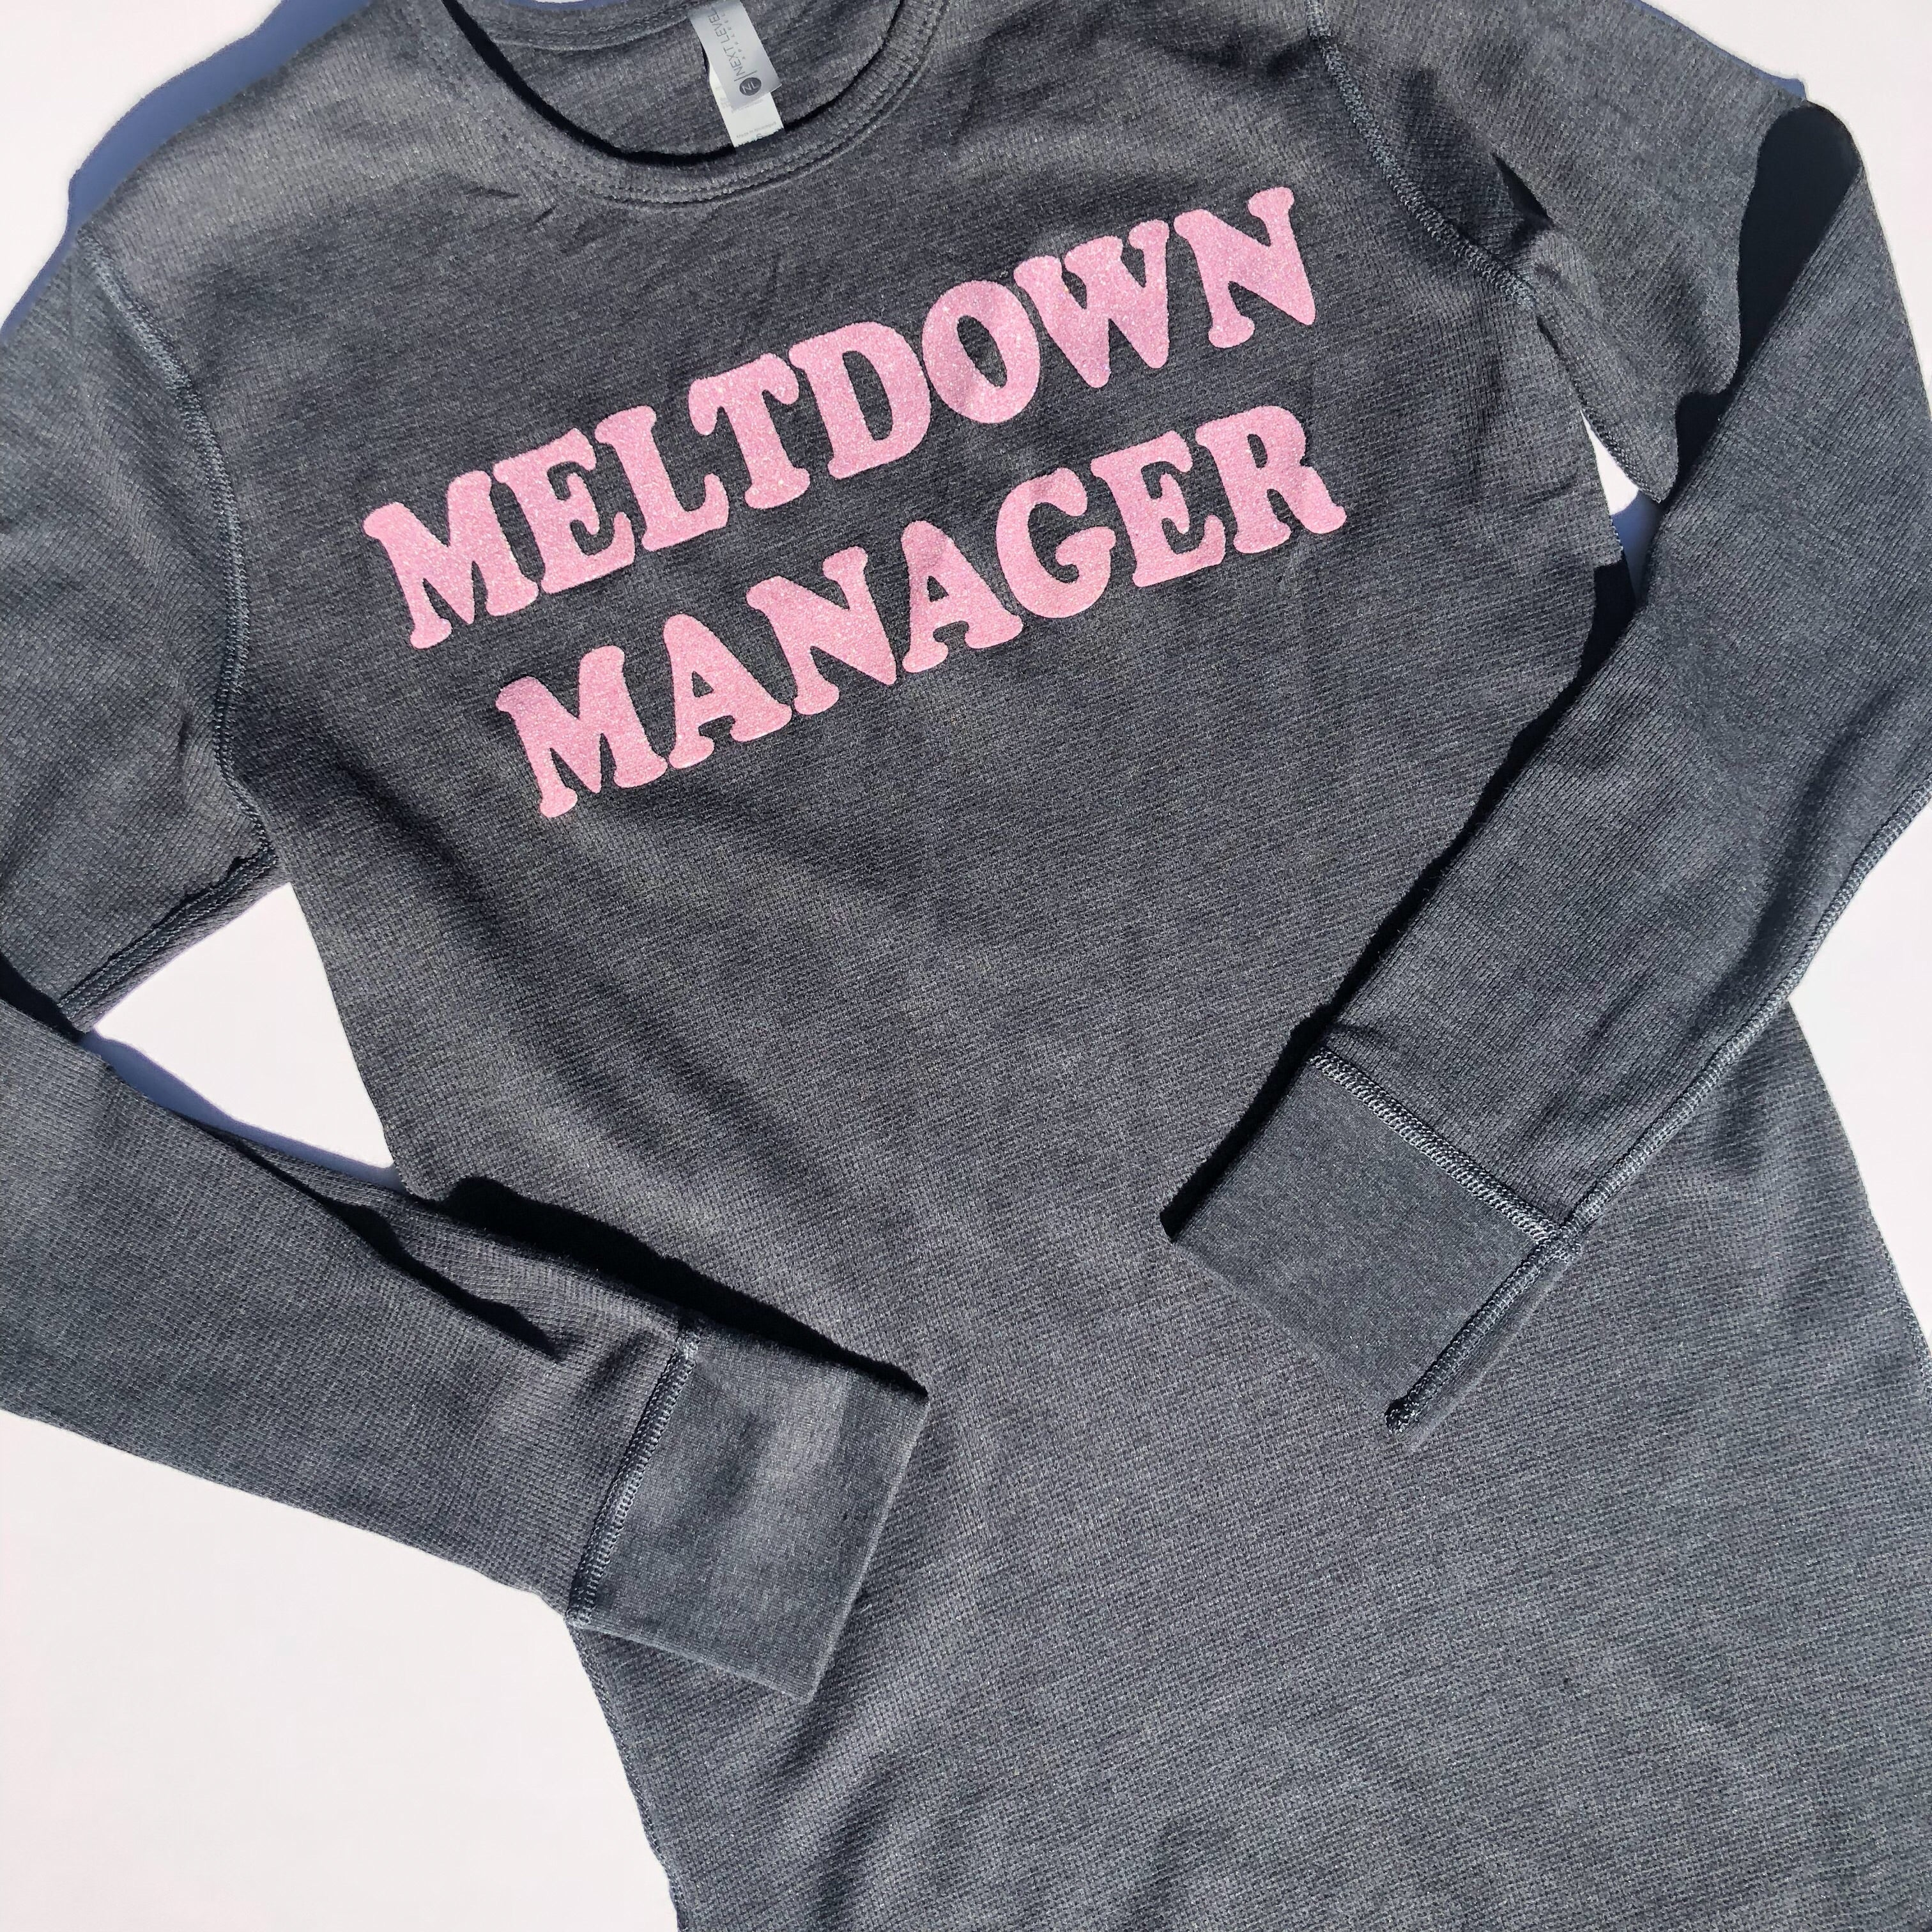 Meltdown Manager Thermal Pullover - Charcoal w/ Blush Glitter